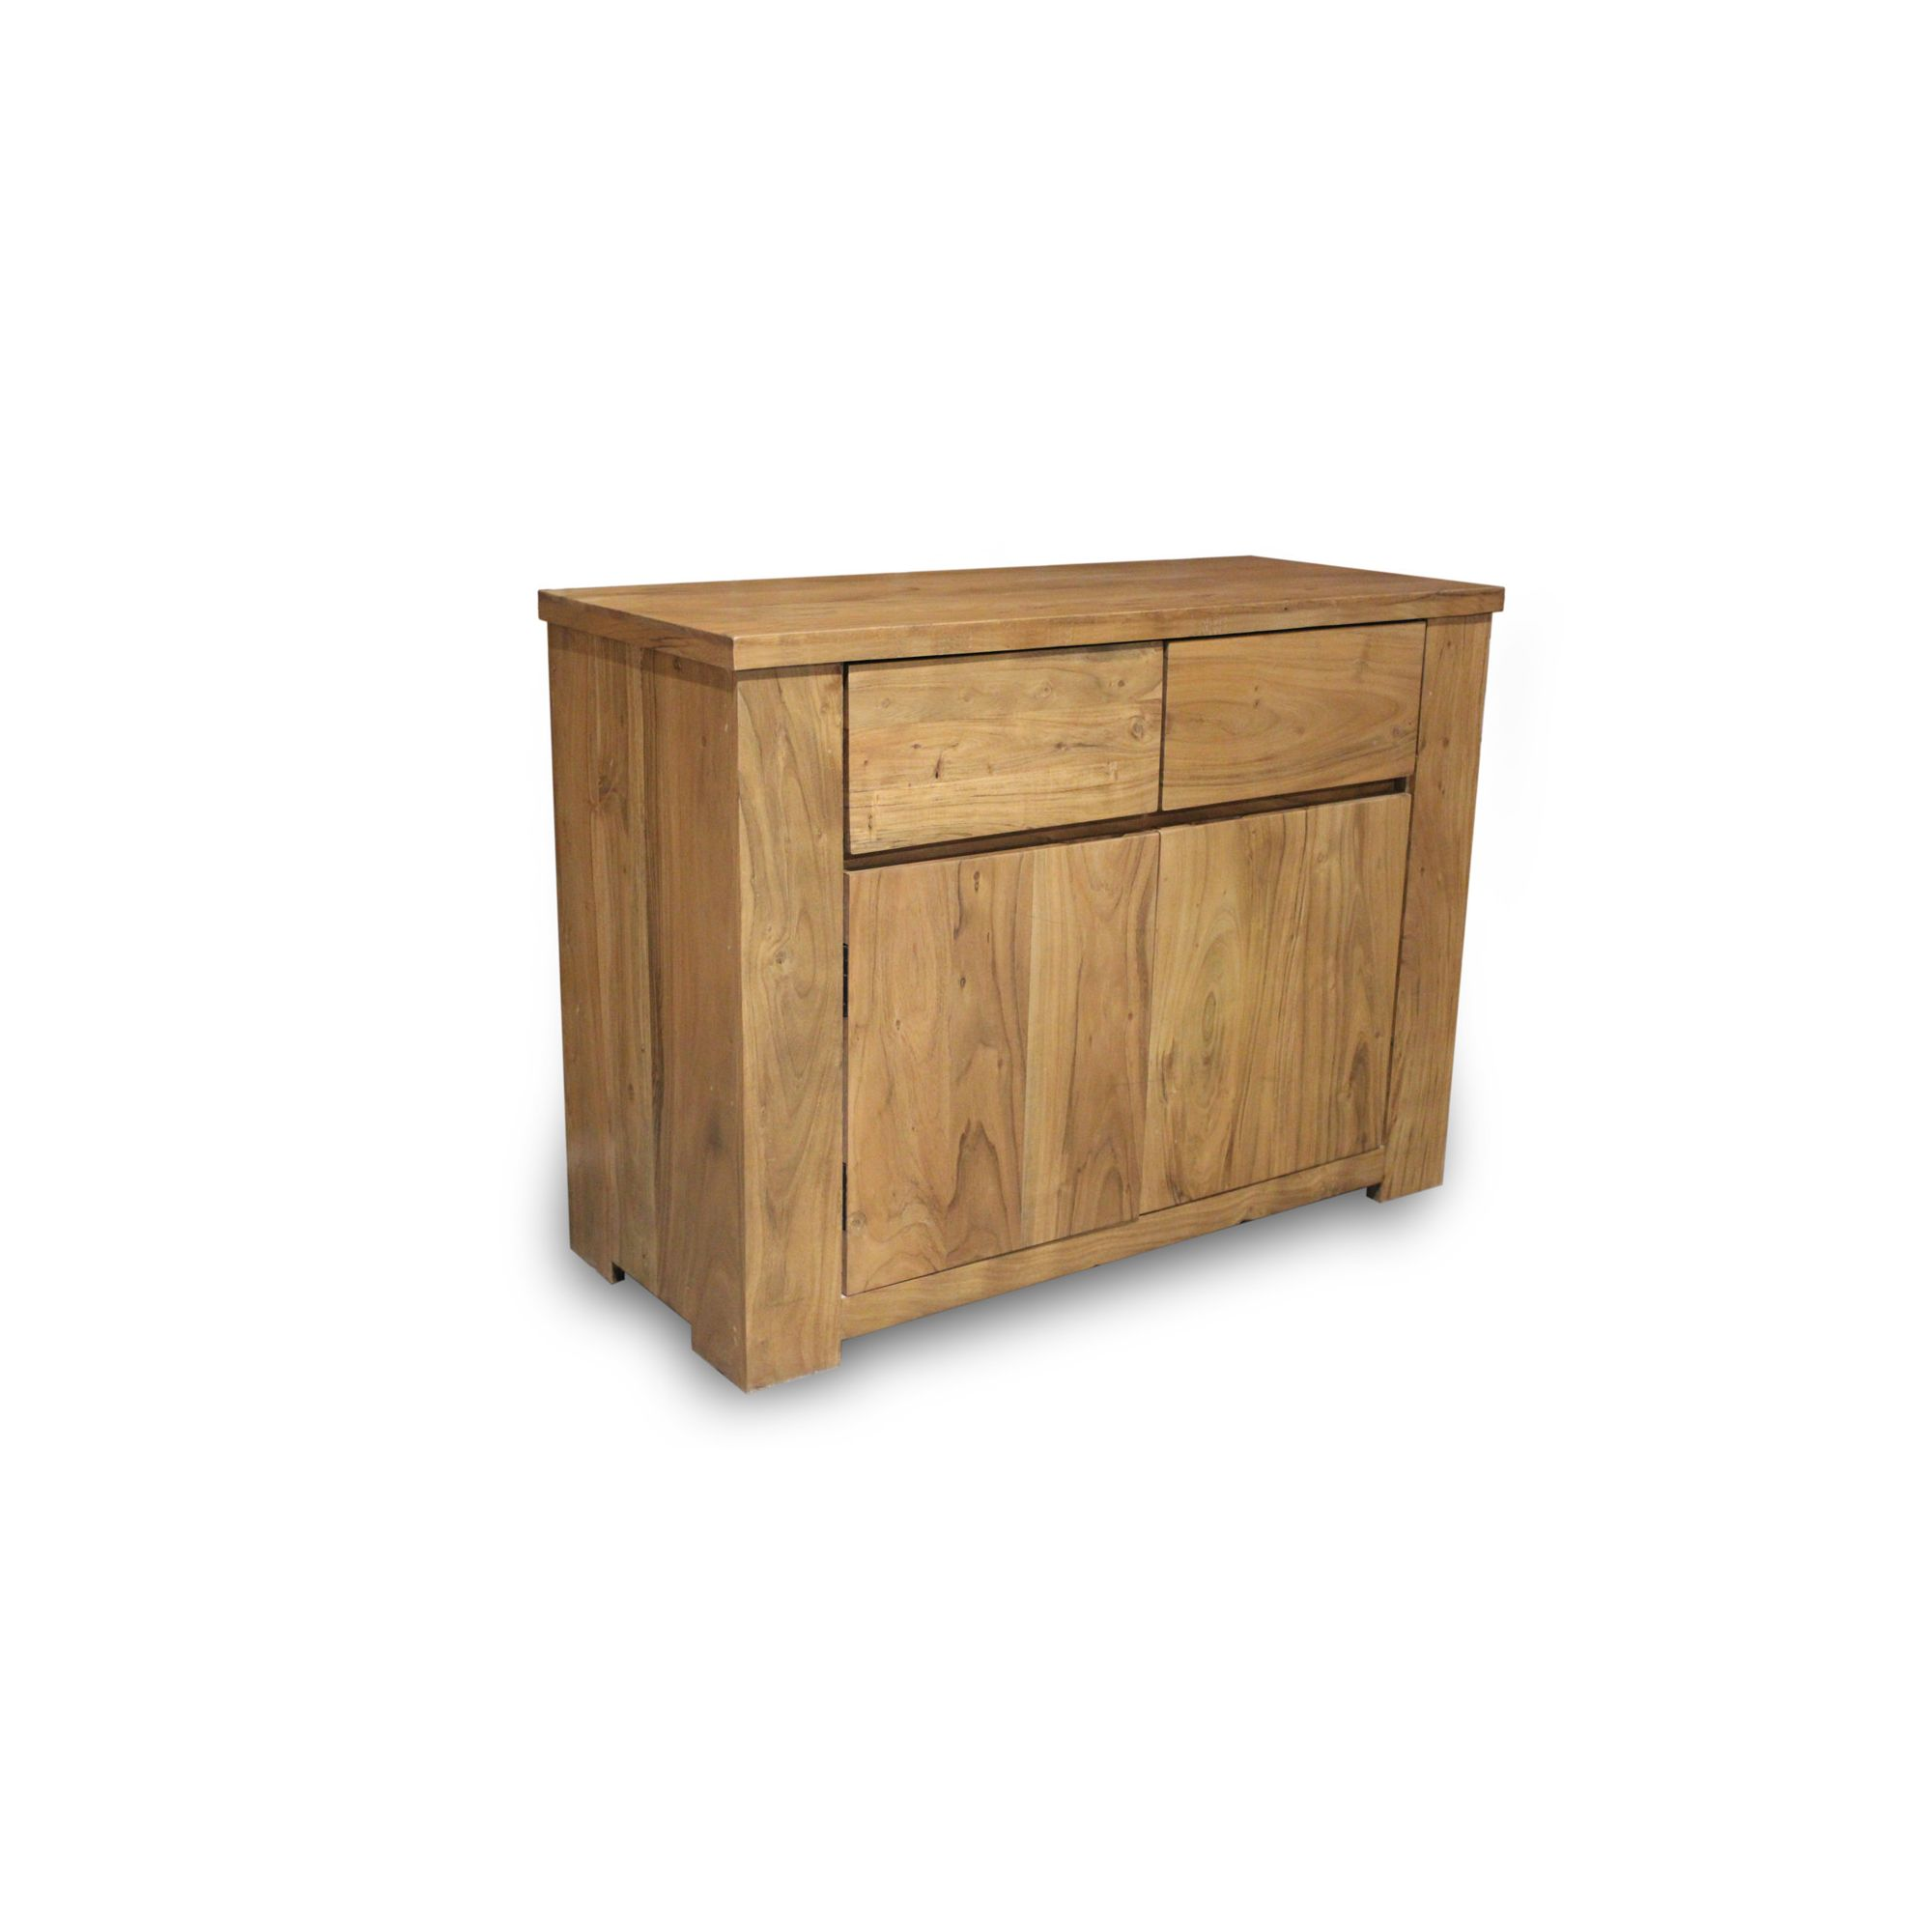 Shankar Enterprises Alwar Sideboard - Medium at Tesco Direct